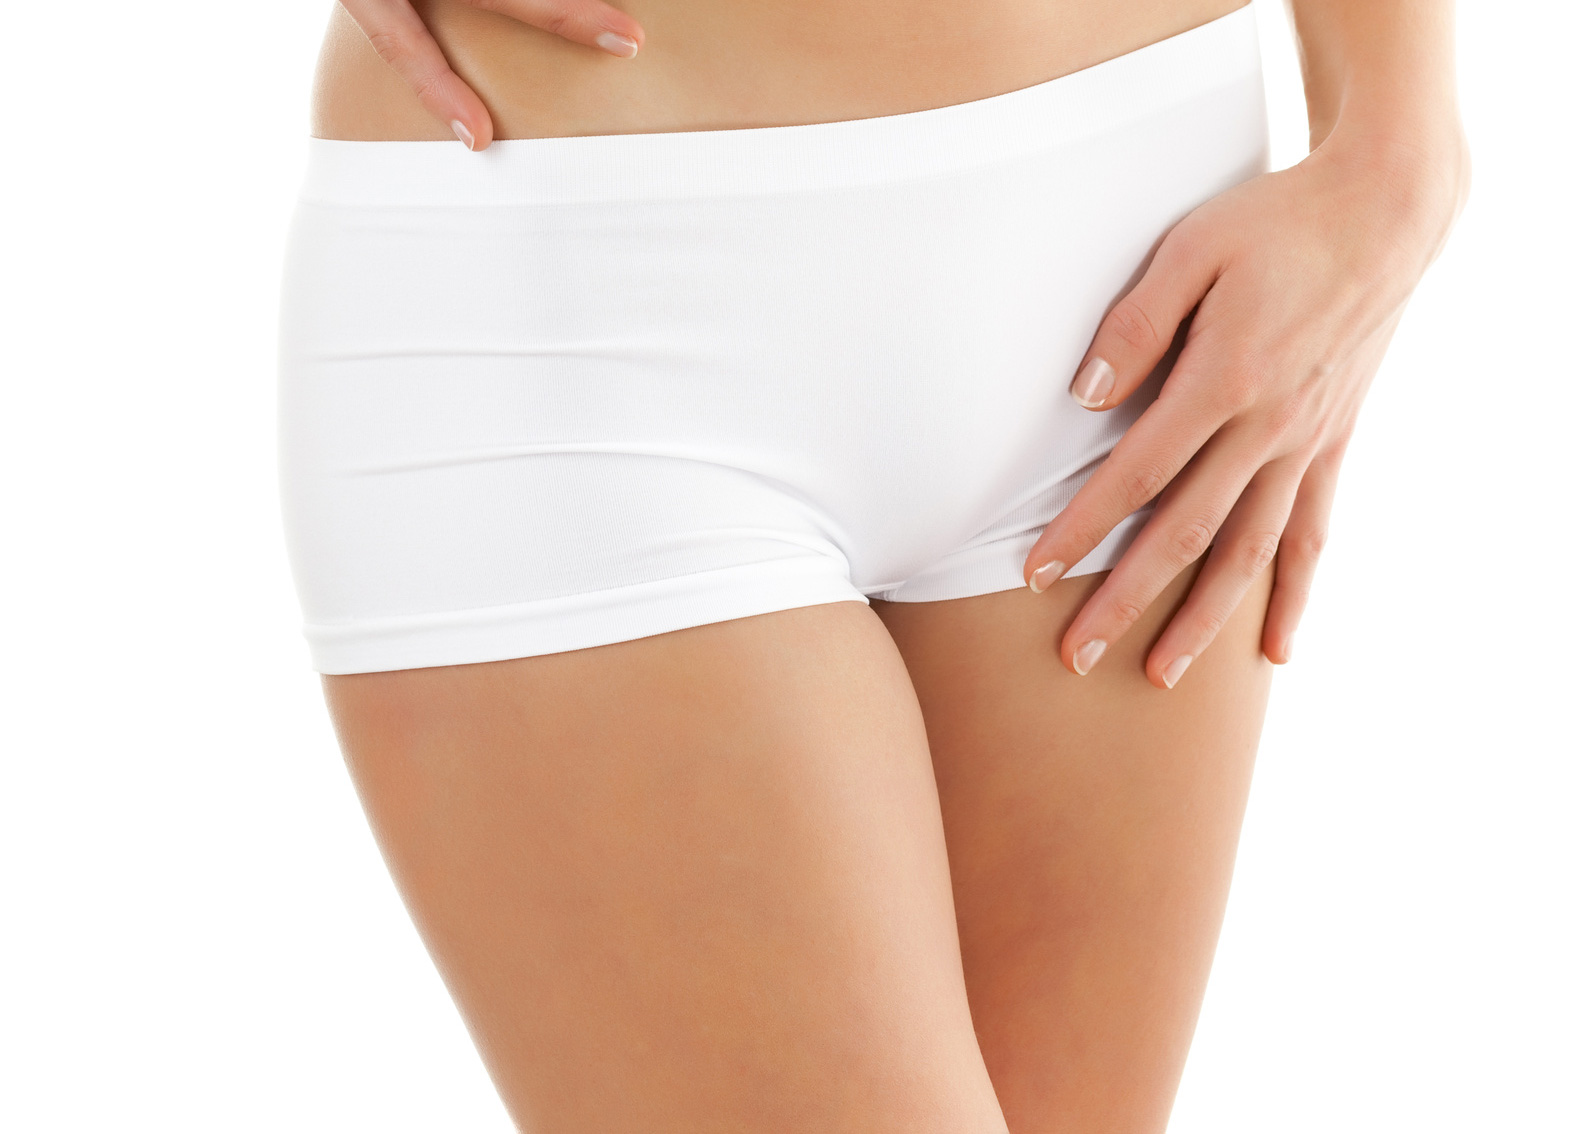 labial puff vaginal surgery | Cosmetic Surgery Today: http://www.cosmeticsurgerytoday.com/labial-puff/labial-puff/